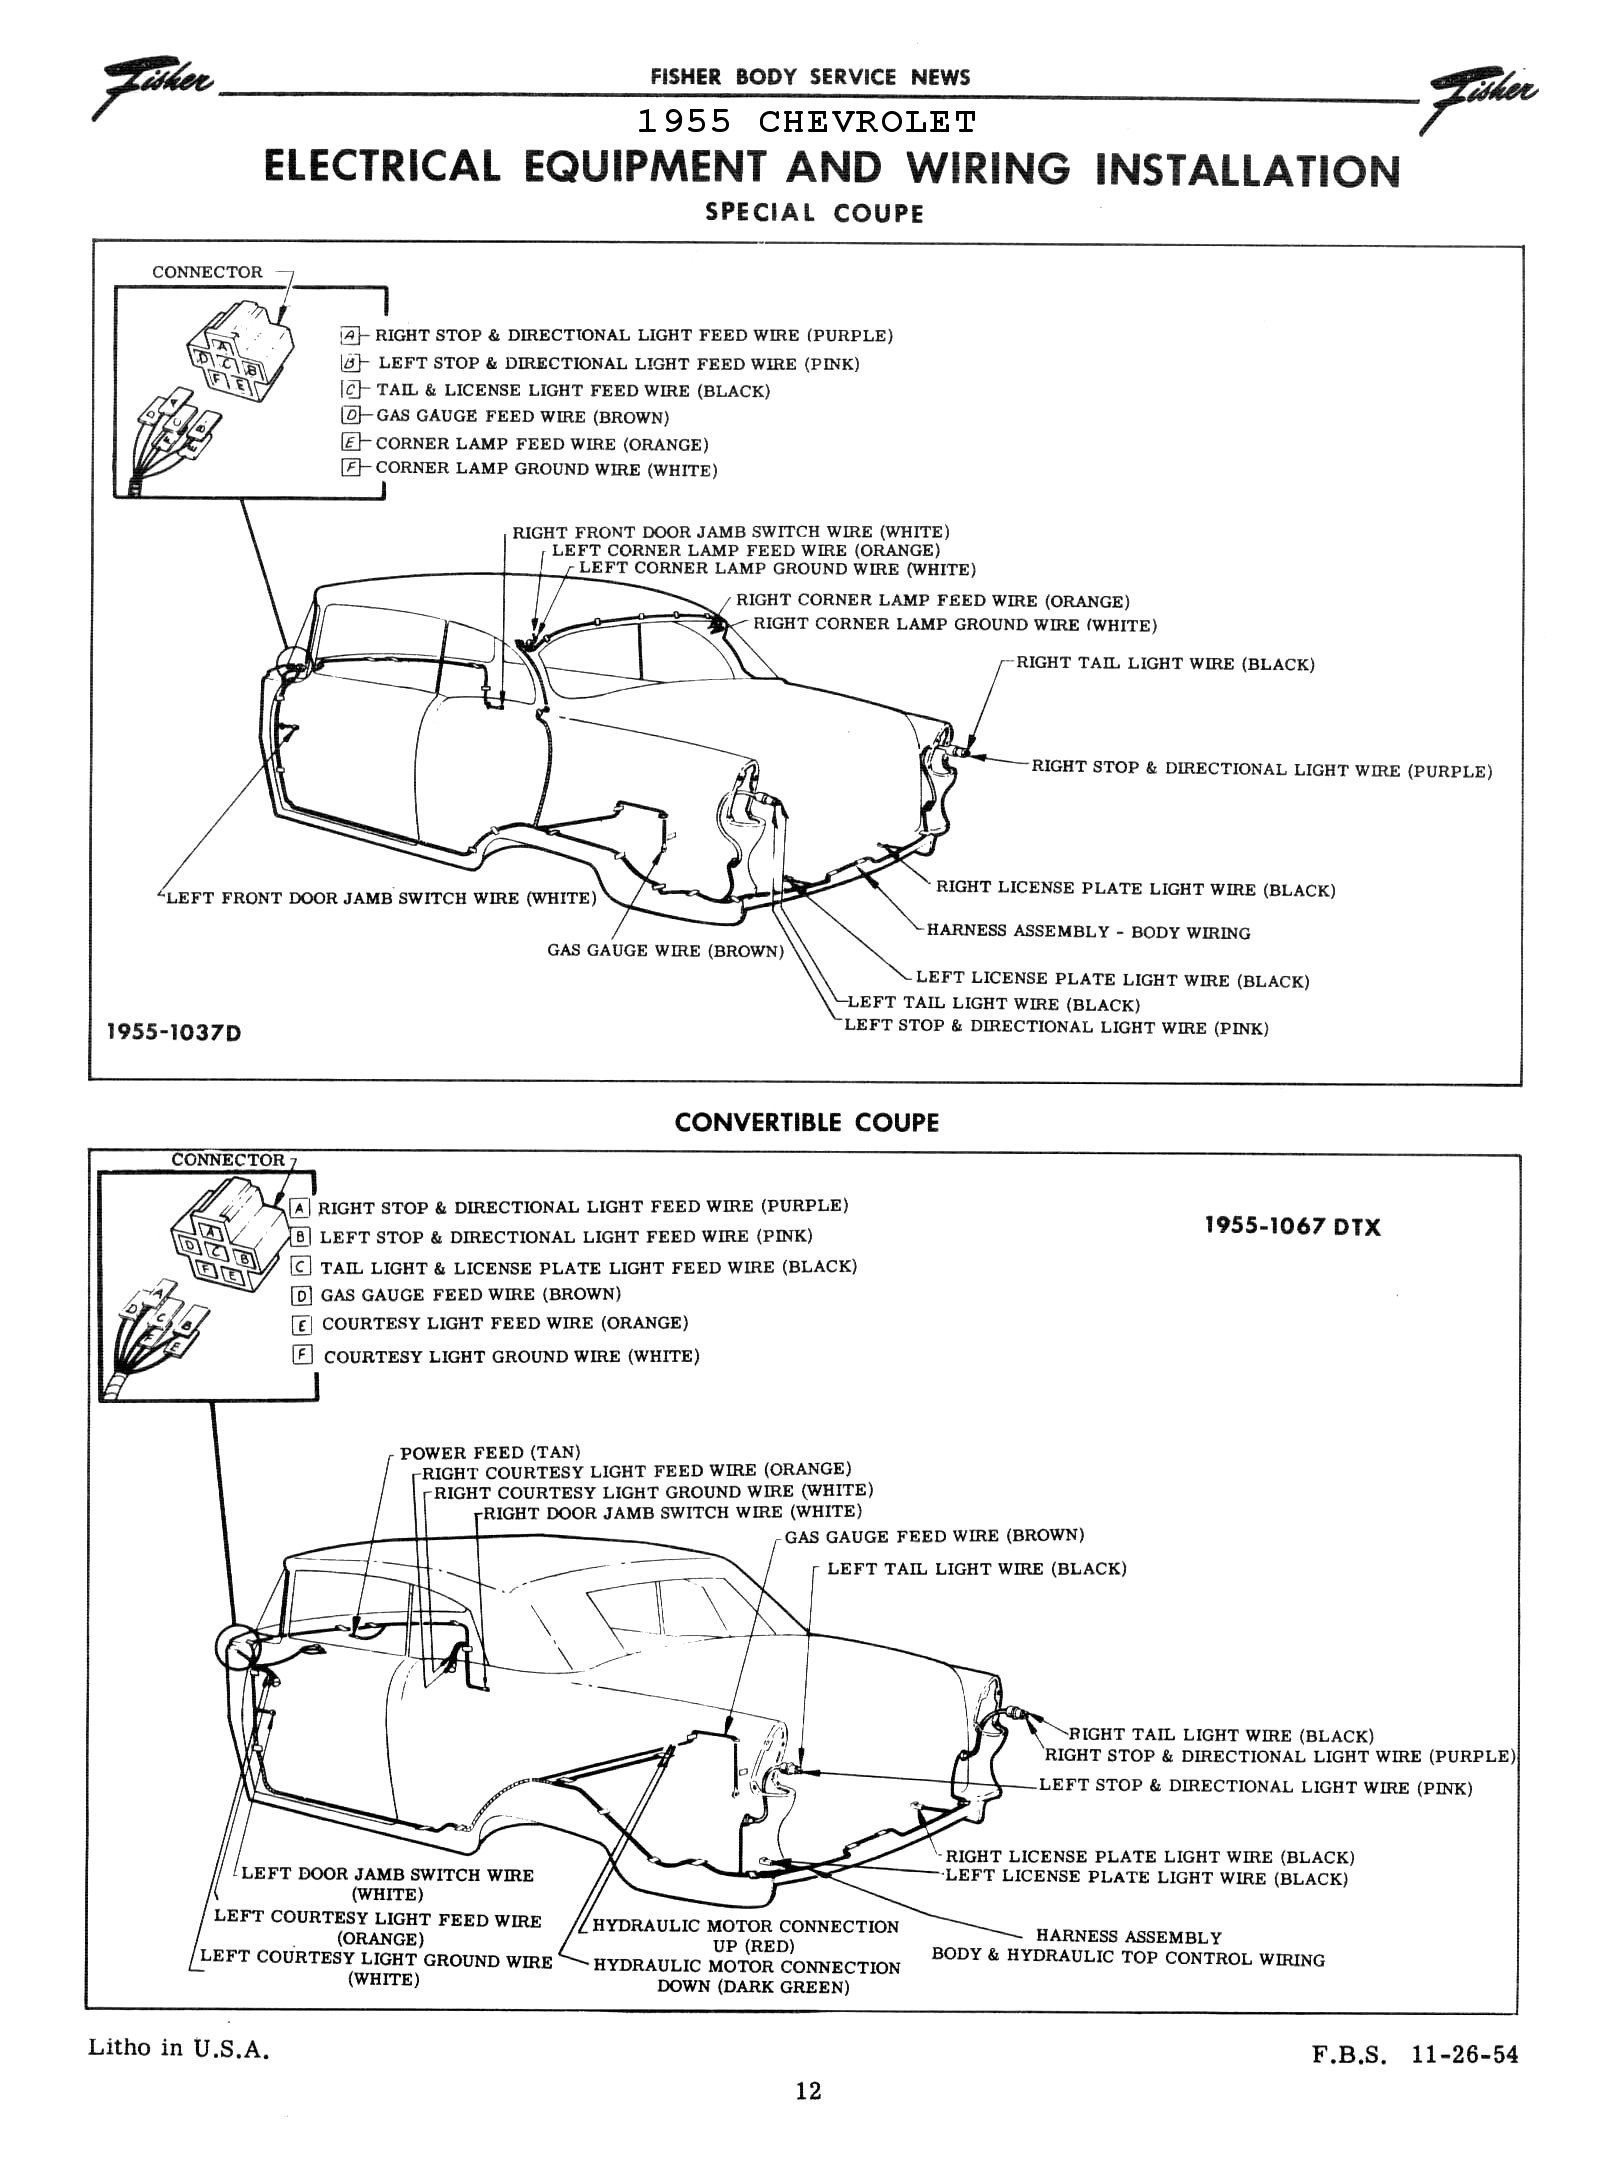 57 chevy heater wiring best part of wiring diagram